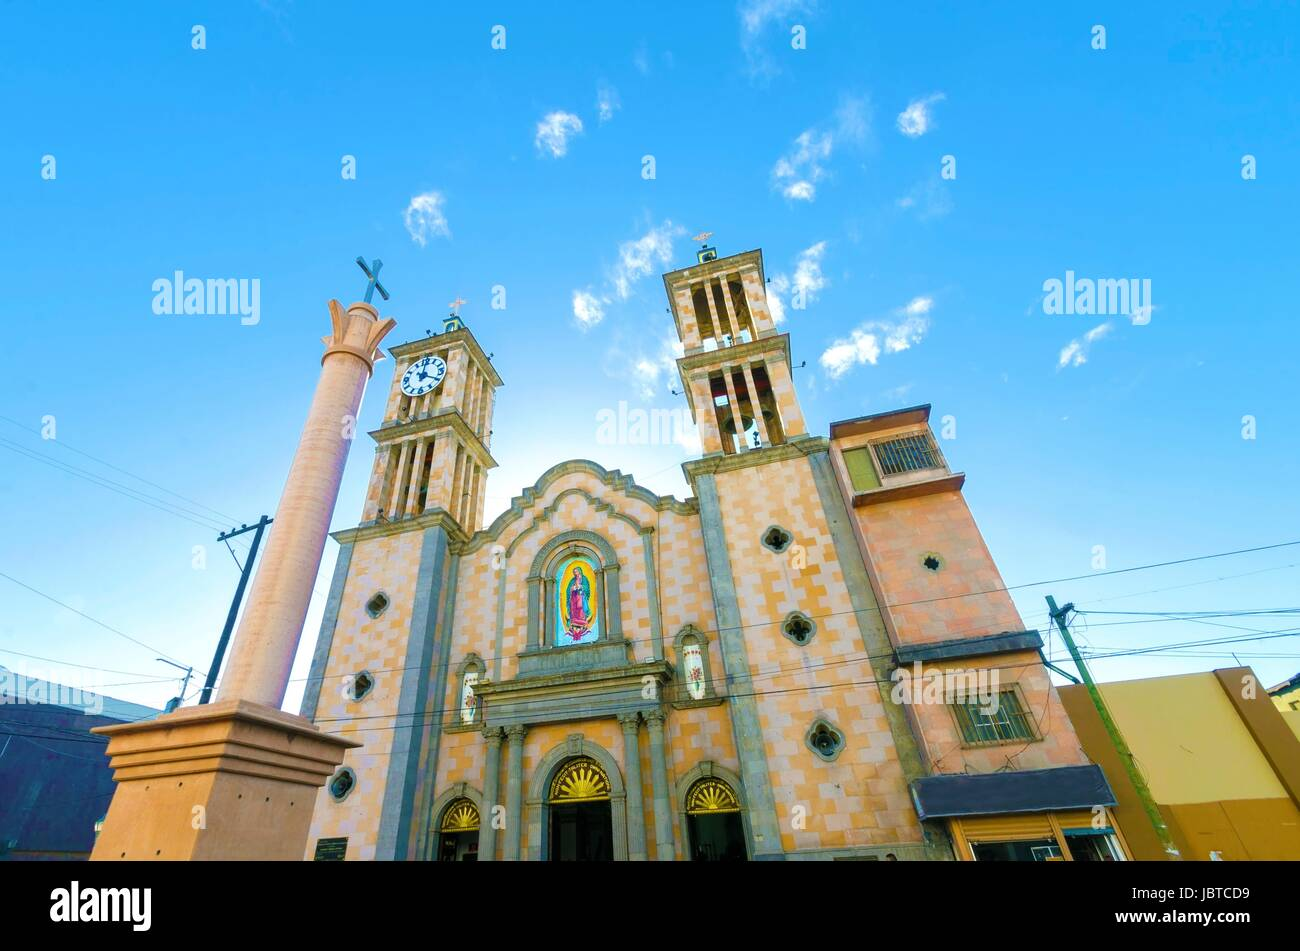 The Catedral de Nuestra Senora de Guadalupe, the first catholic church in Tijuana, Mexico of the Lady of Guadalupe. - Stock Image